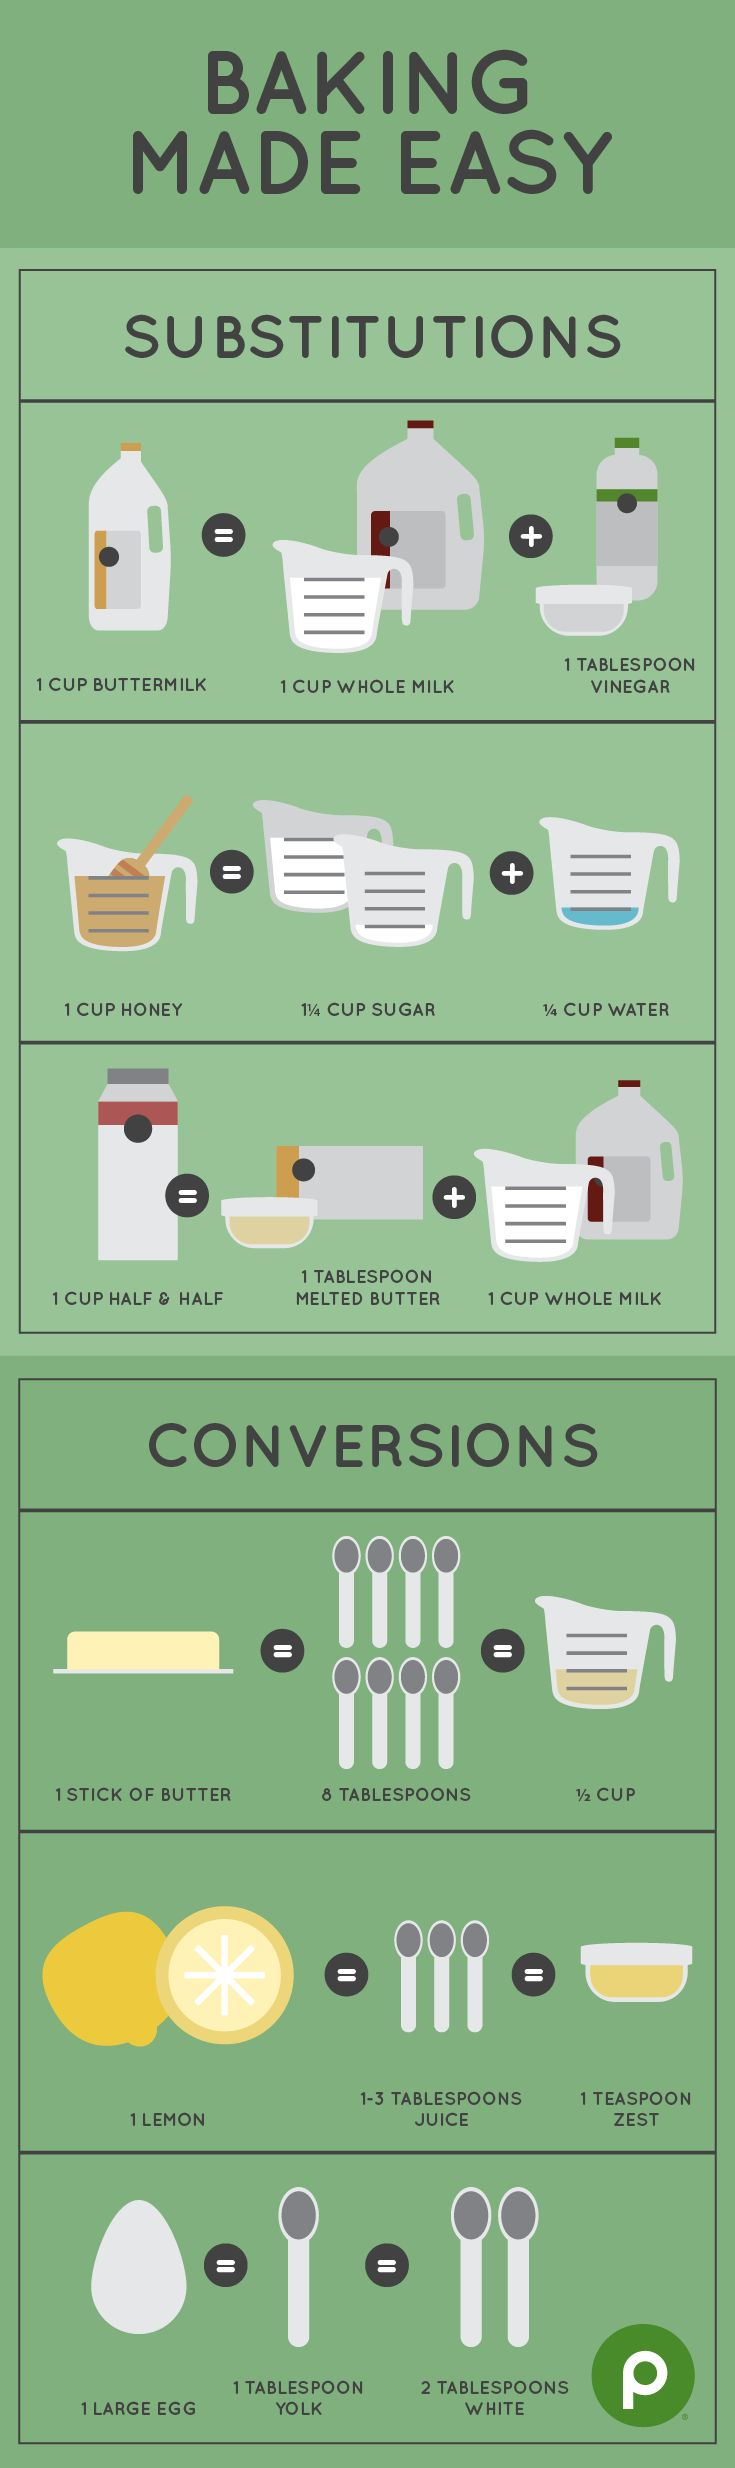 Need to know what to sub in and out of your favorite Publix holiday or everyday recipes—and how much? Go ahead and pin this little cheat sheet to use while you're whipping up your favorite dishes and desserts with ingredients like buttermilk, vinegar, sugar, honey, lemon, and eggs.